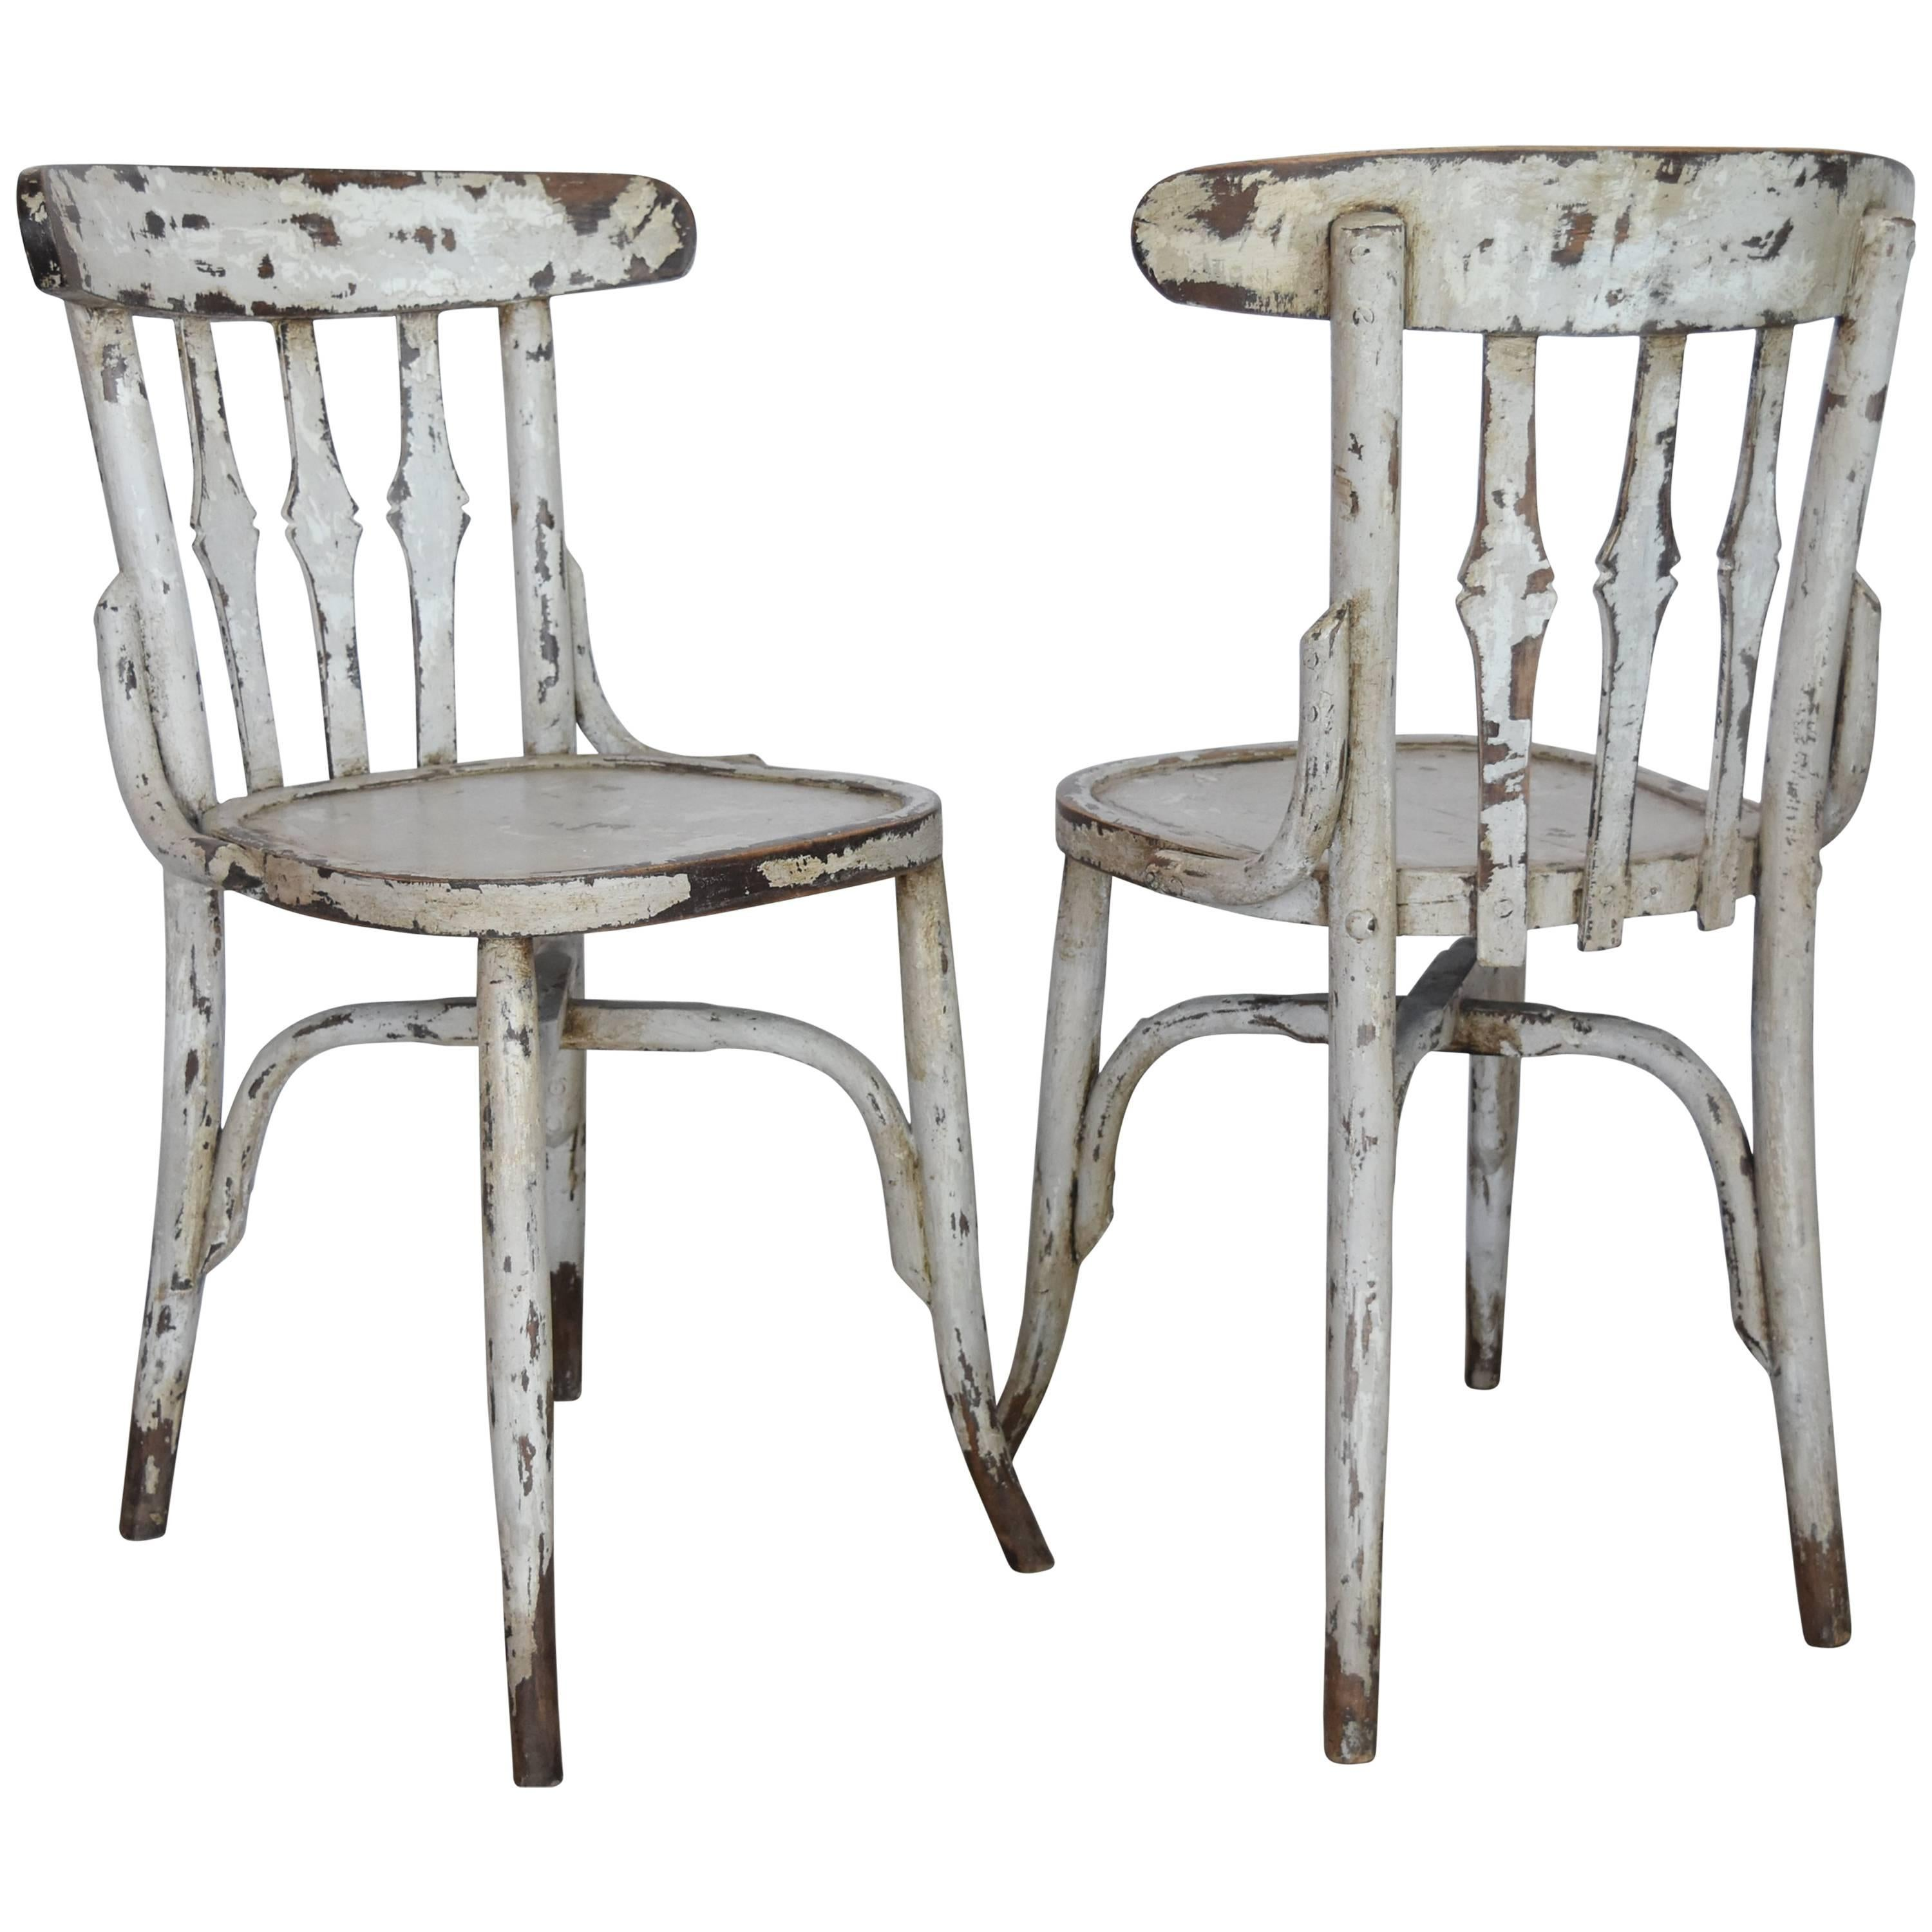 1950s Spanish Wooden Cafe Bistro Chairs With Light Gray Paint For Sale